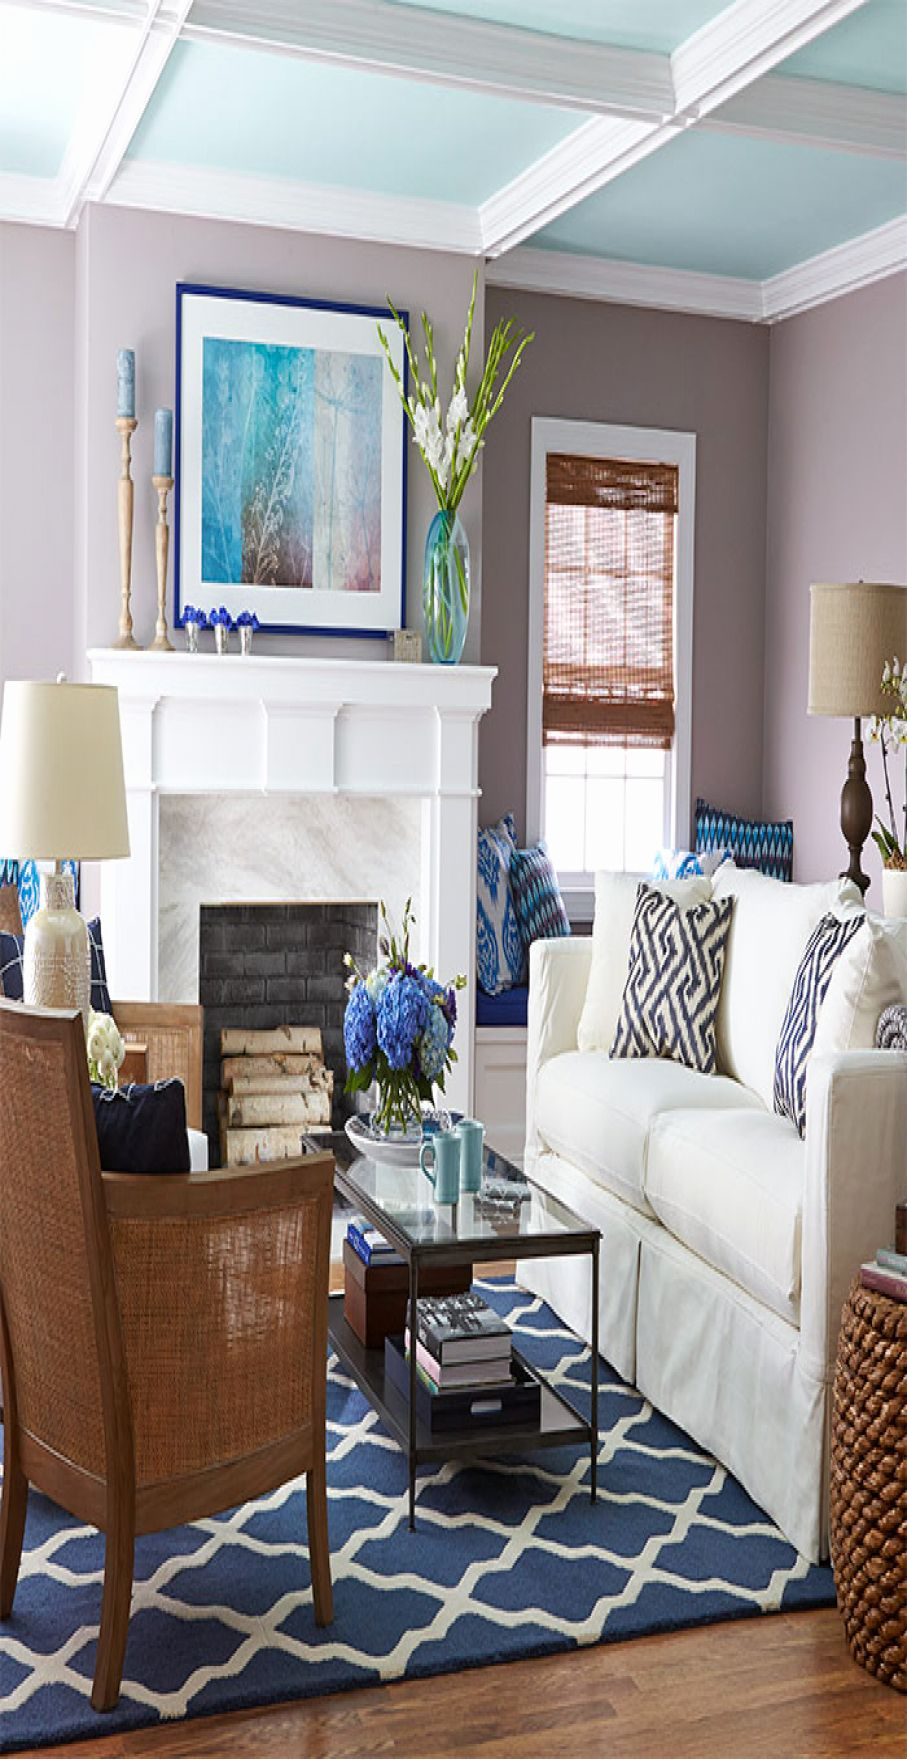 49 luxury spring color palettes ideas living room color on lowe s paint colors id=48032